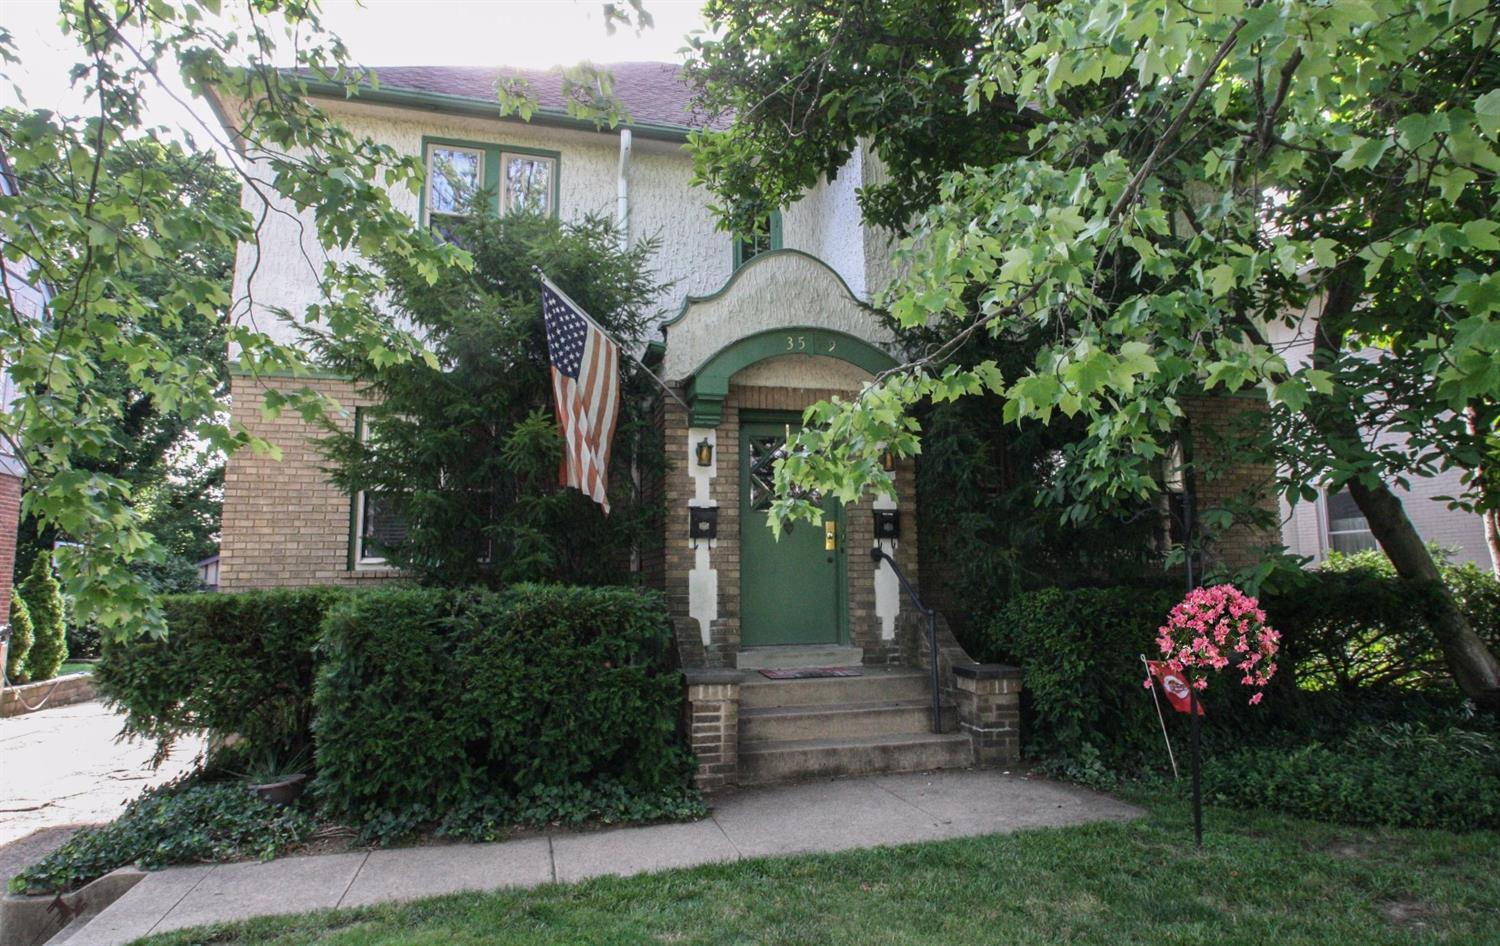 3579 Mooney Ave Hyde Park Oh 45208 Listing Details Mls